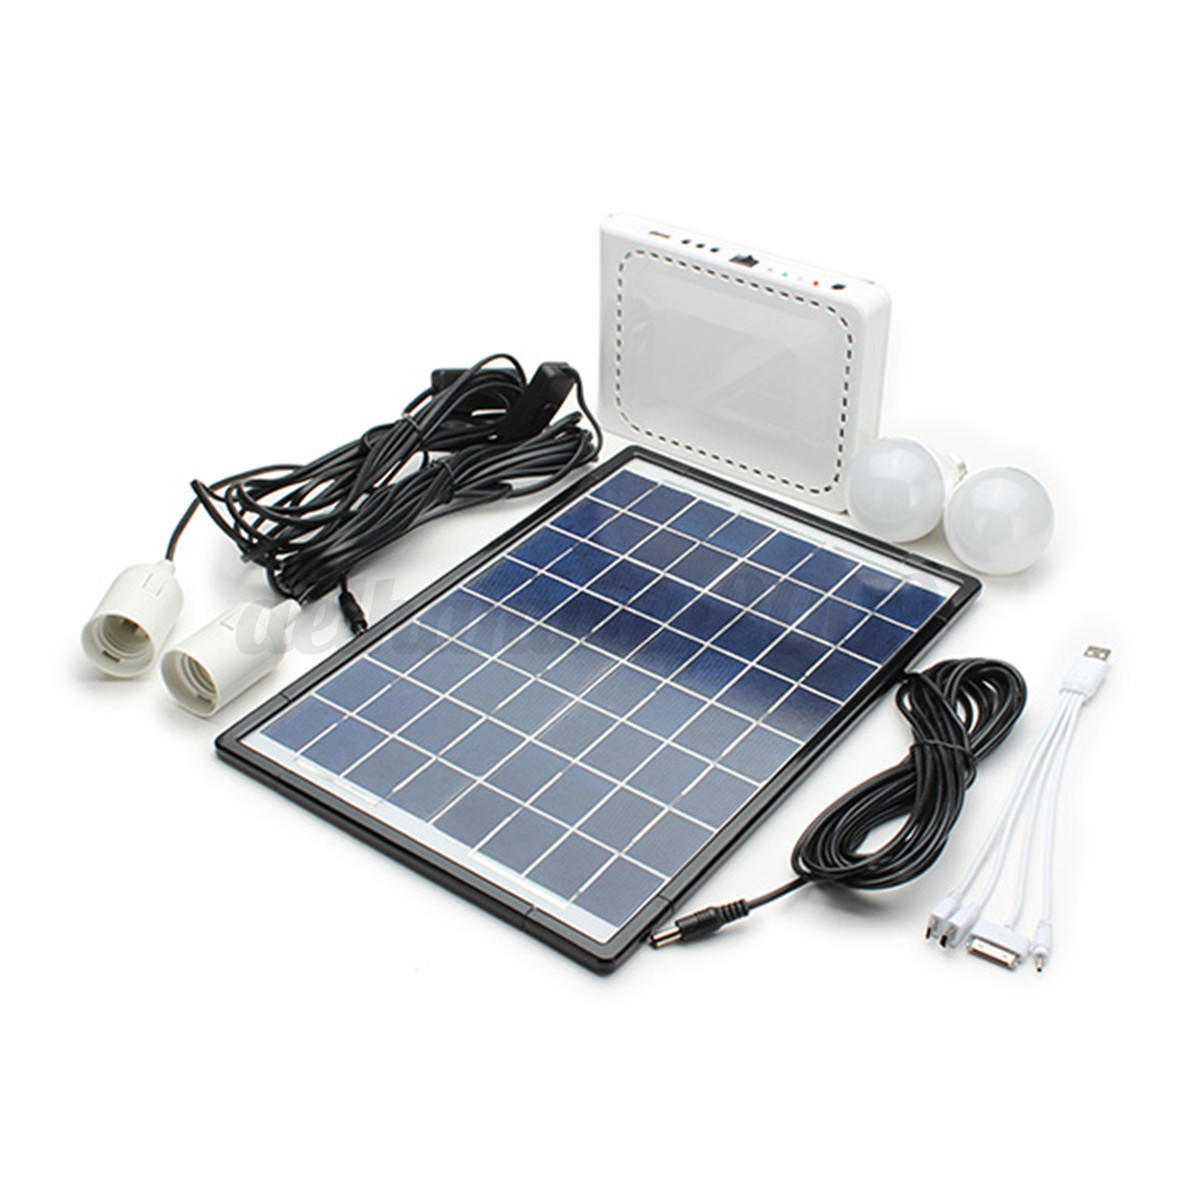 Edinburgh May16 Oxis Energy Ltd Lis Batteries For Energy Storage Applications further CE Certificate And Msds Certificate 48 Volt Li Ion Battery Pack 18707253 likewise Battery Charger 12v Lithium Mobile also Wiring Diagram 48 Volt 200ah Battery likewise Pp 56674. on lifepo4 battery charger circuit